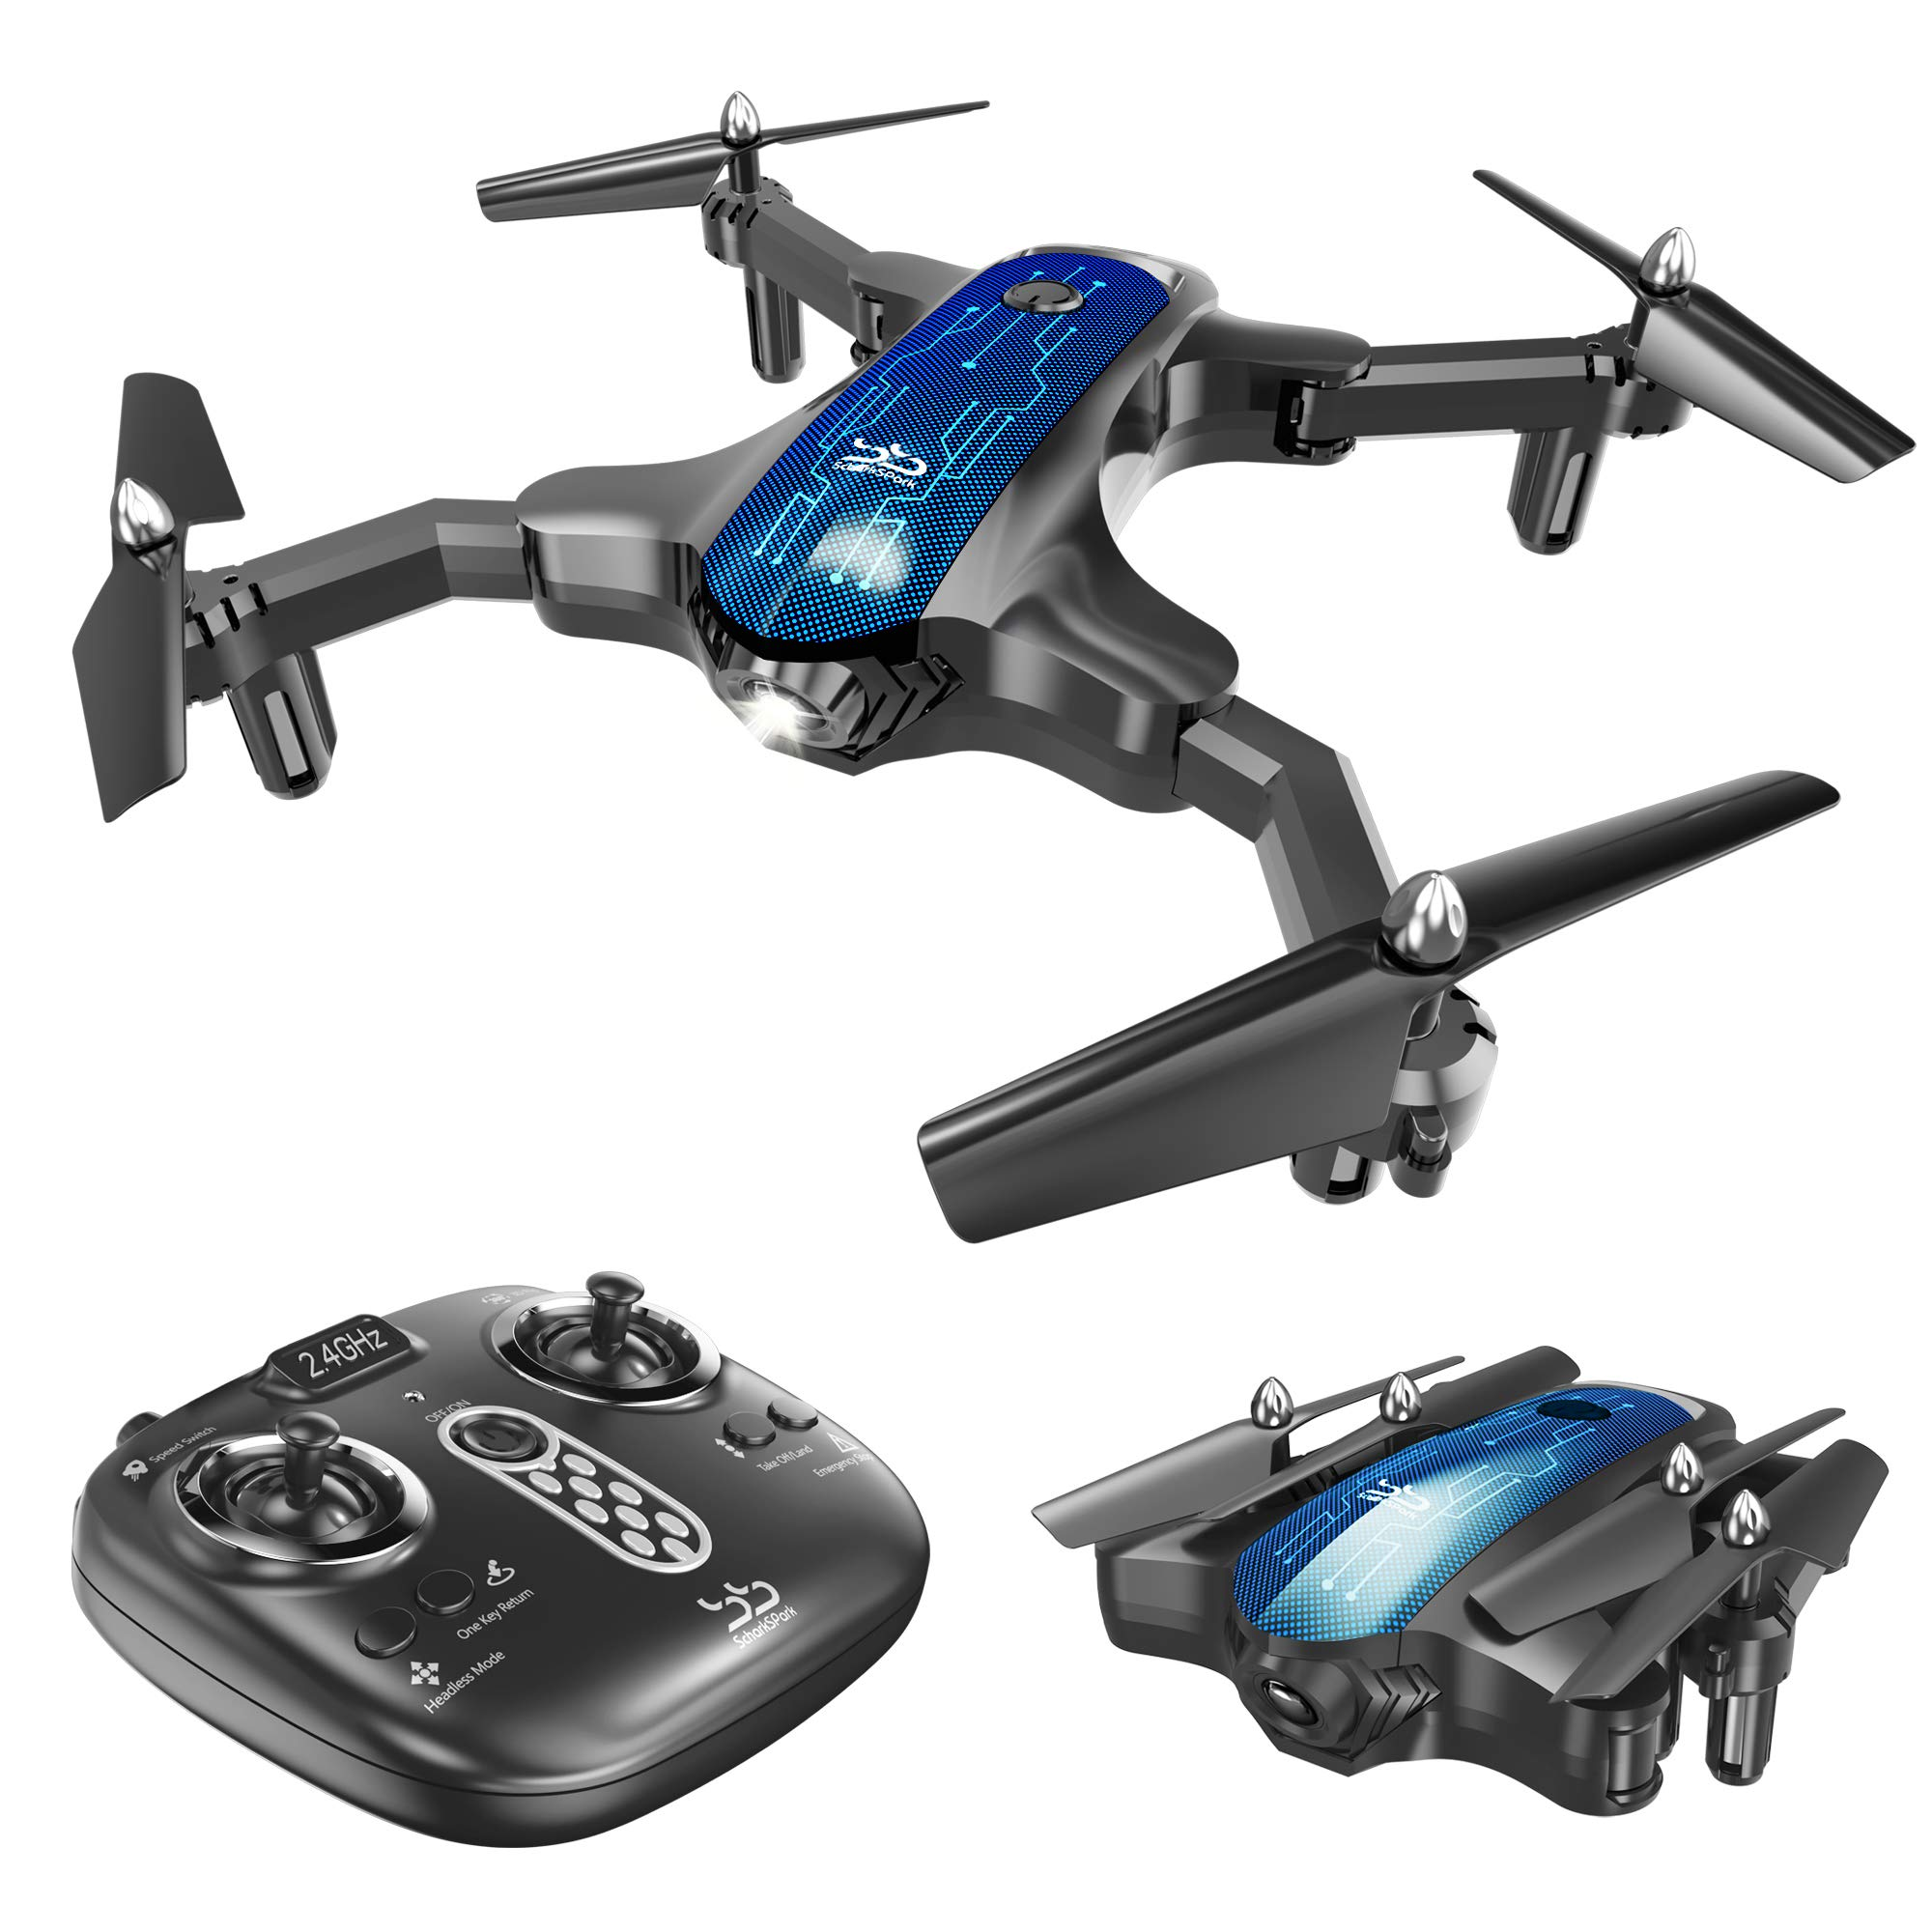 ScharkSpark Drone for Beginners, Portable RC Quadcopter with Foldable Arms Indoor/Outdoor Play, 6-Axis Gyro One-Key Return/Headless Mode/Altitude Hold/3D Flips, Warrior II by ScharkSpark (Image #1)